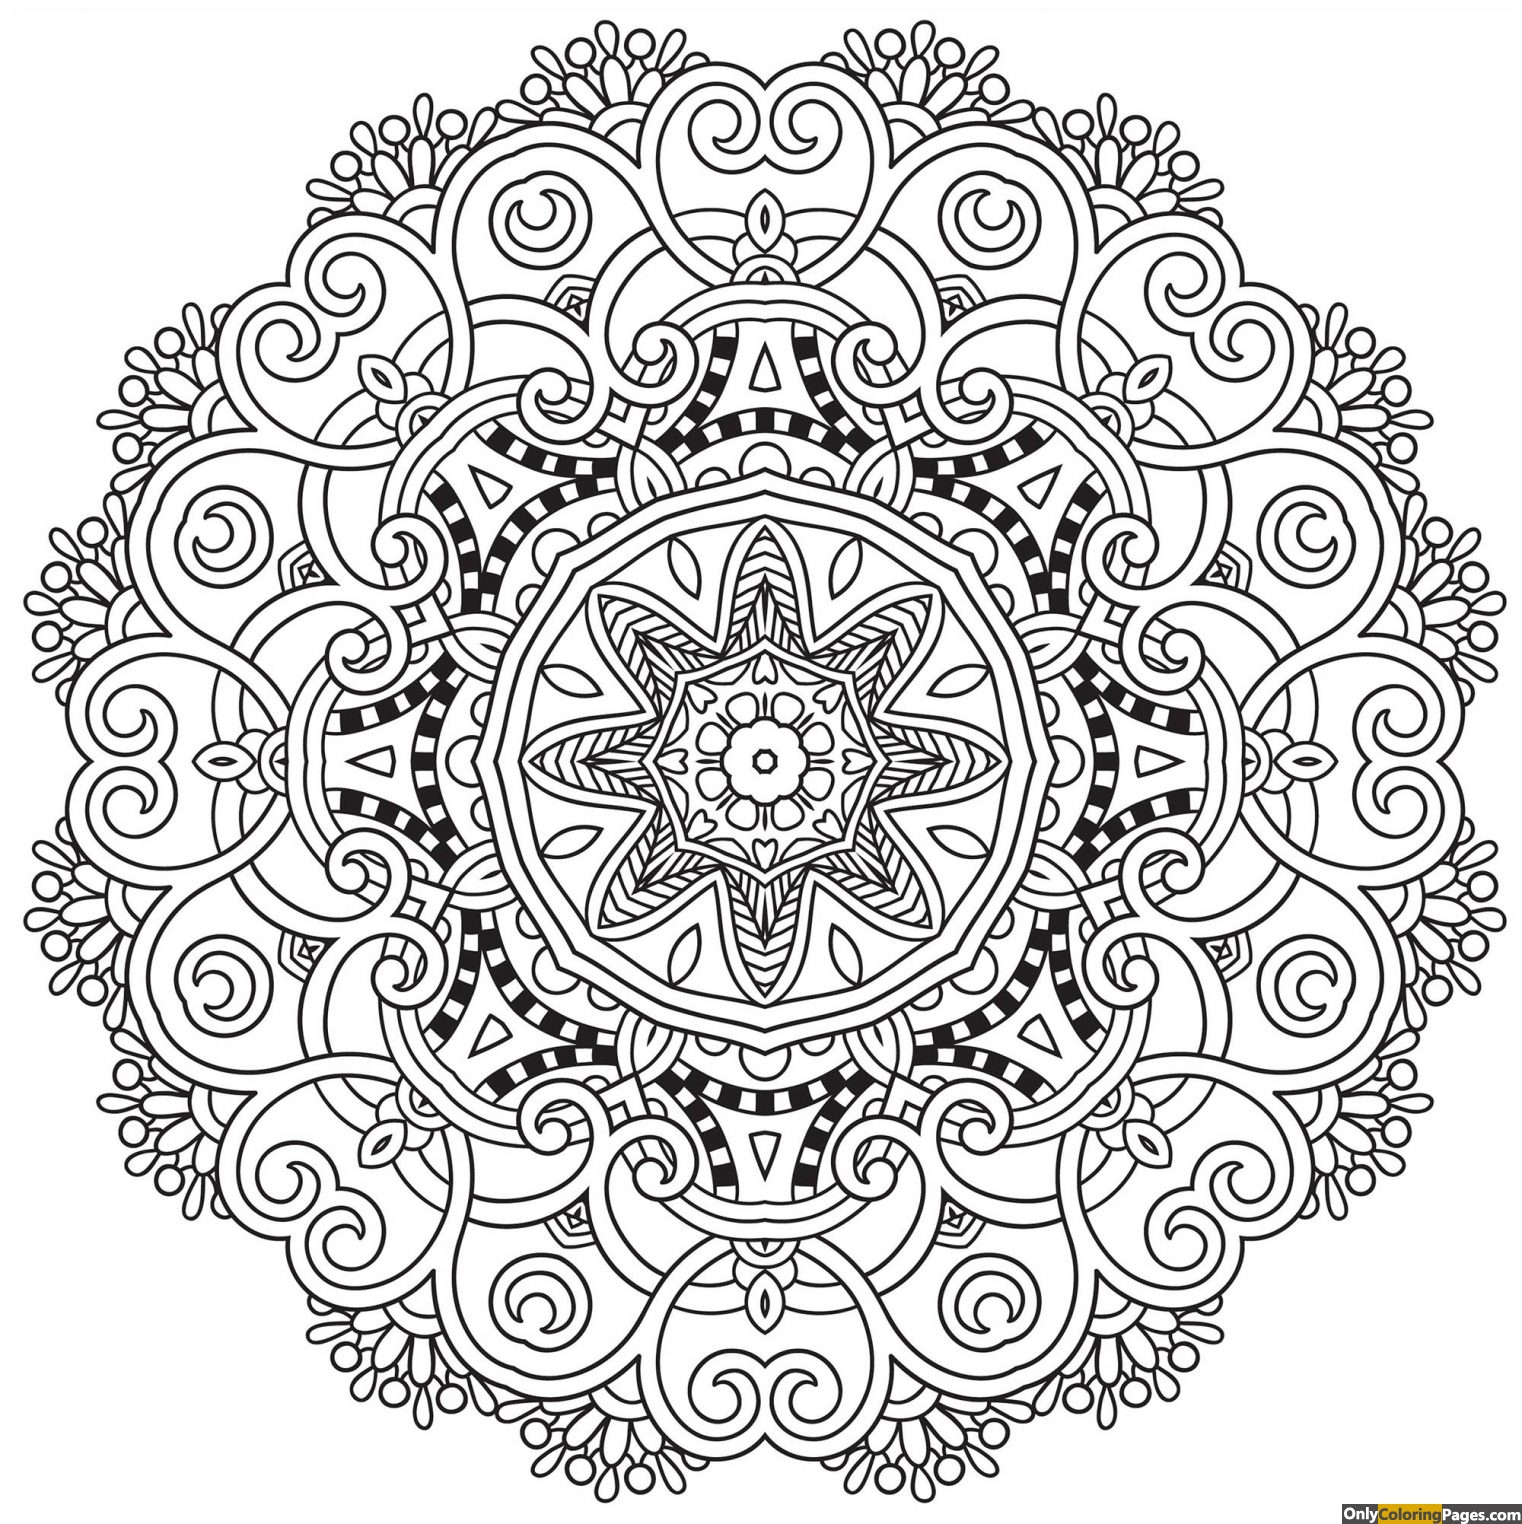 Clean Mandala Coloring Page Free Printable Online Clean